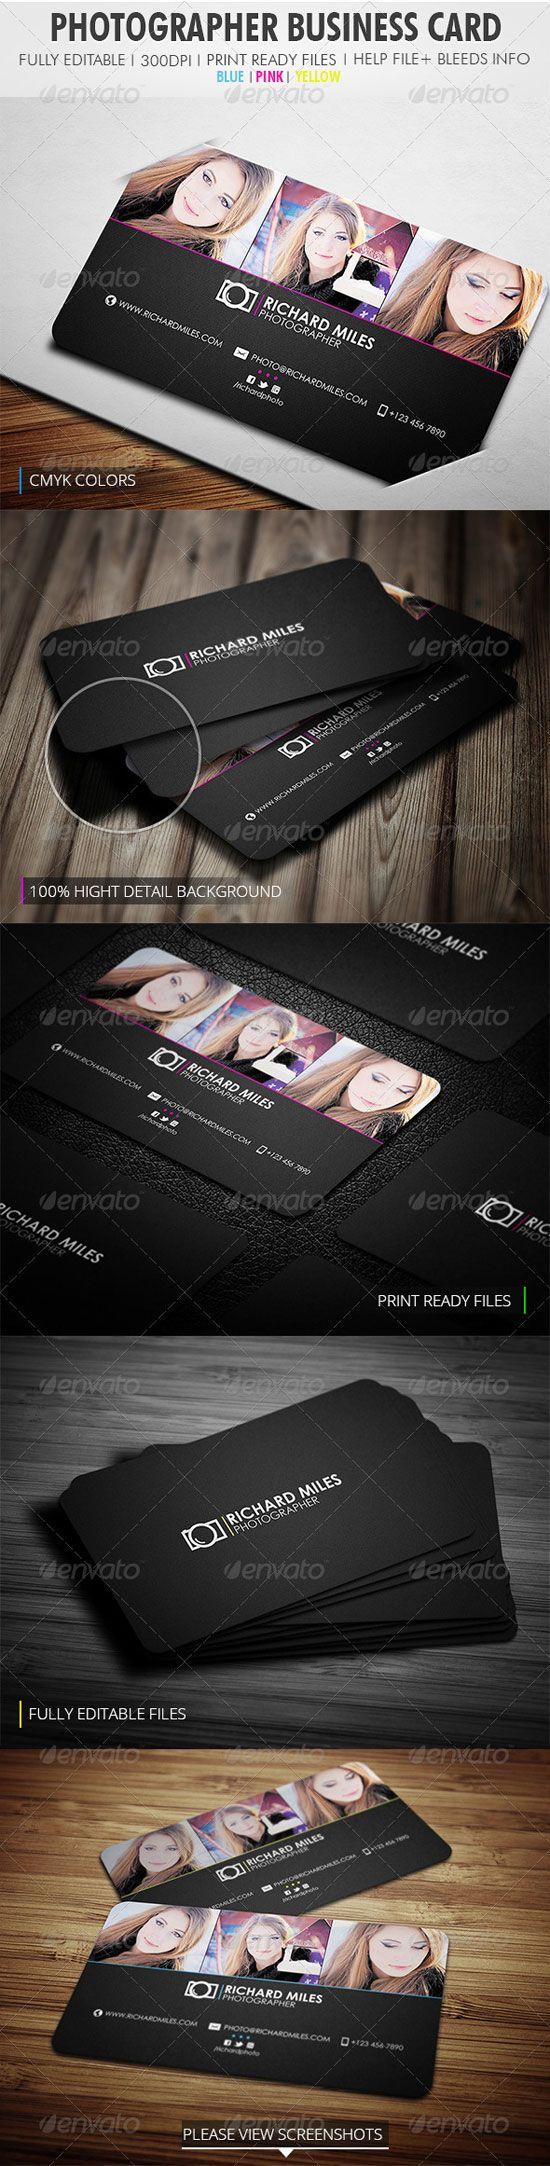 1676 best best business cards on pinterest images on pinterest the most creative photographer business cards magicingreecefo Choice Image